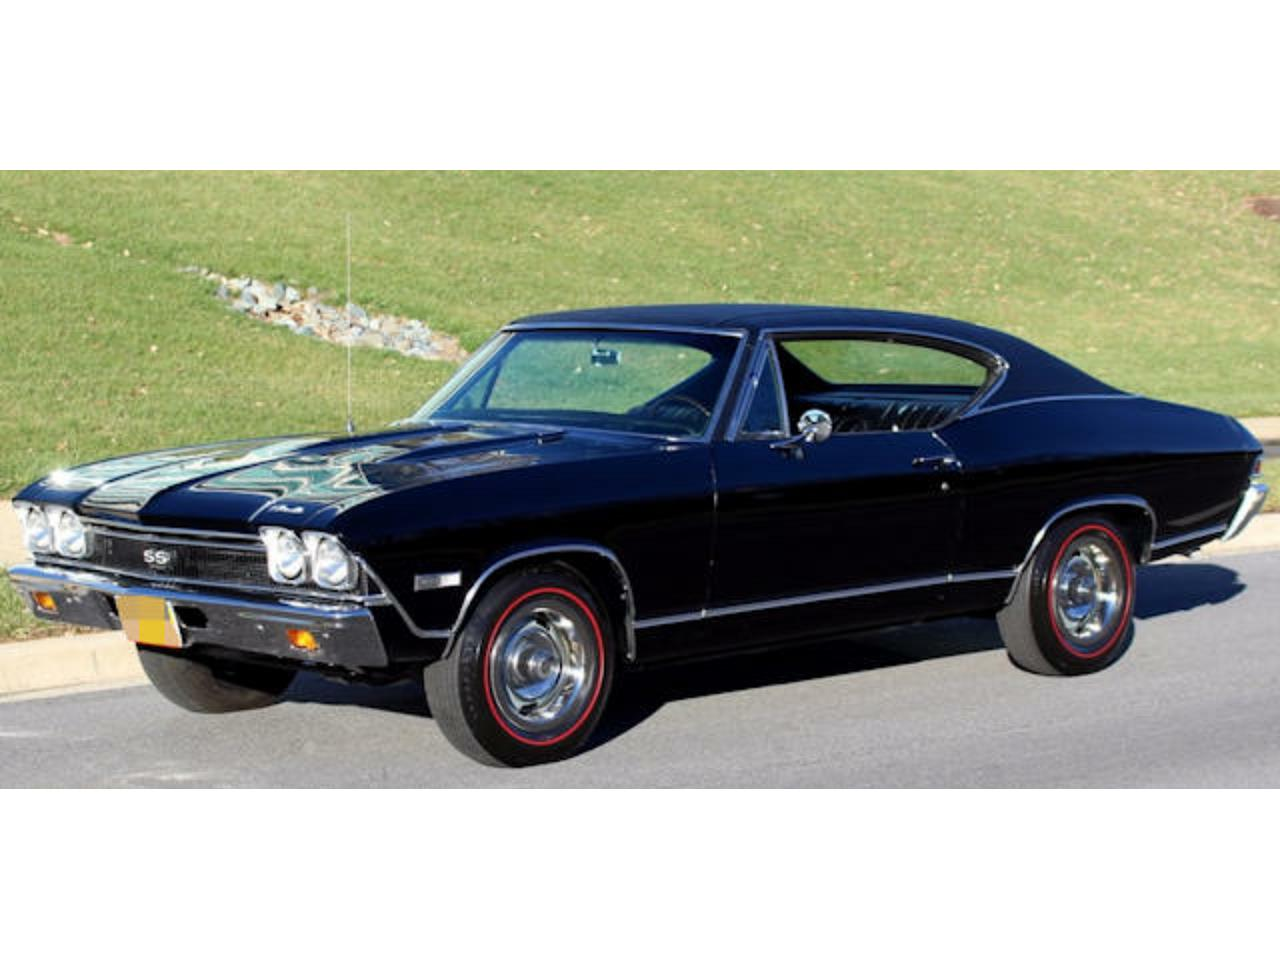 Car Auctions In Pa >> 1968 Chevrolet Chevelle SS 396 Coupe for Sale | ClassicCars.com | CC-989052